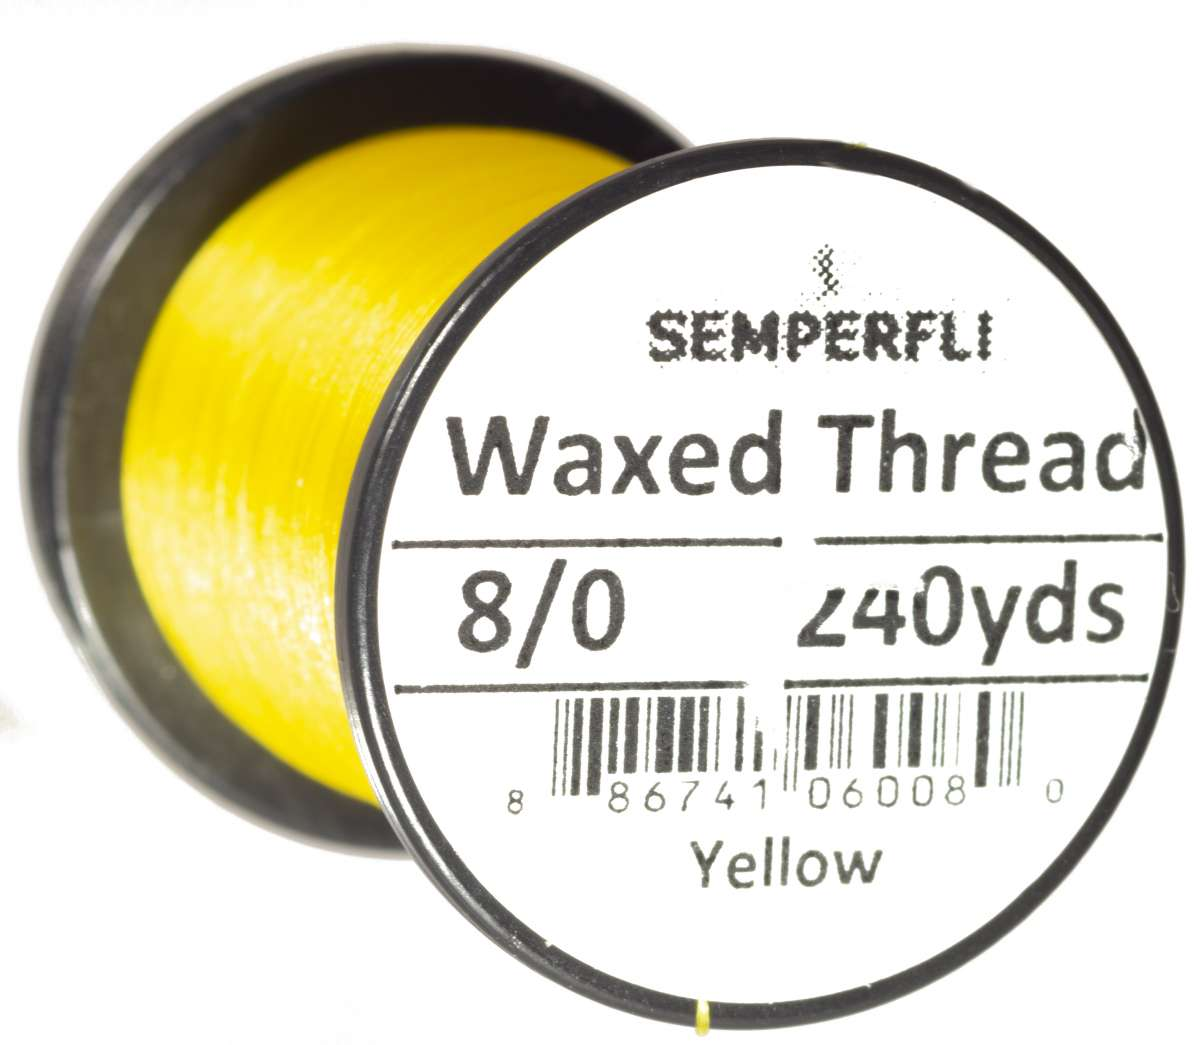 8/0 Classic Waxed Thread Yellow Sem-0400-1583